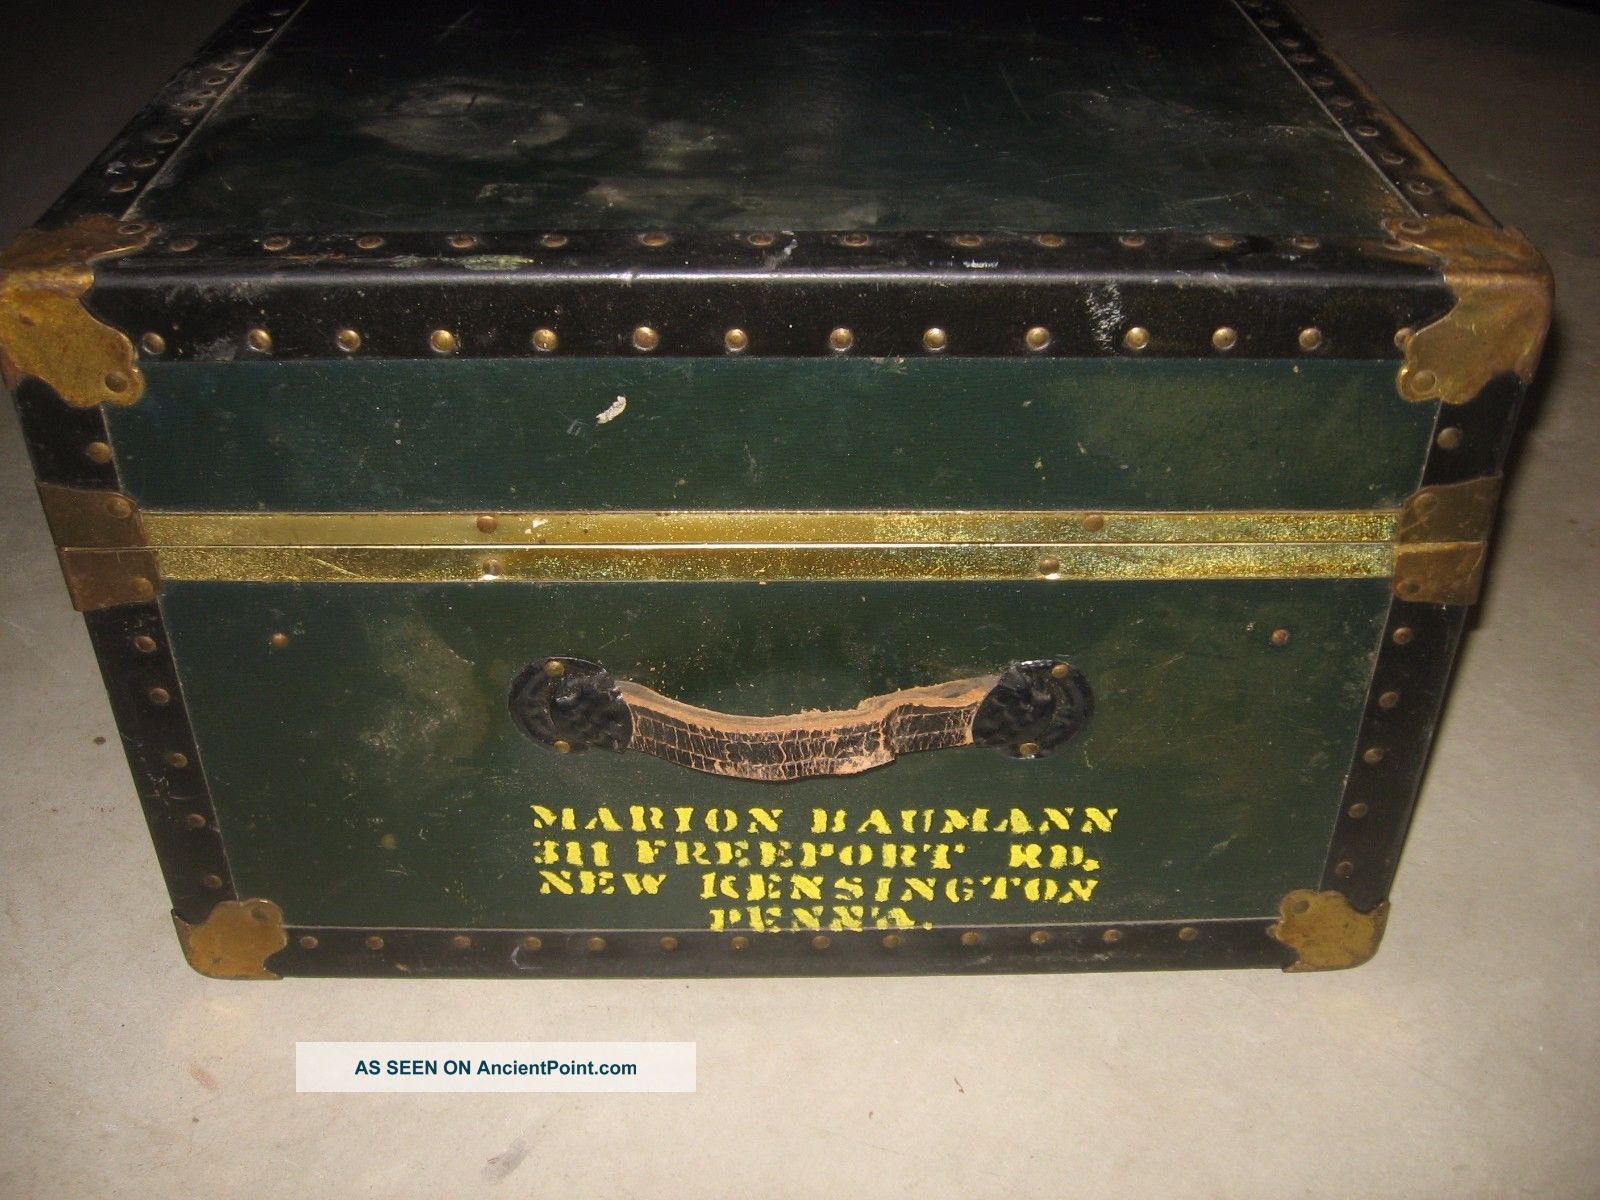 Vintage Steamer Travel Trunk Spaulding Chest Military Wwii Marion Bauman 1900-1950 photo